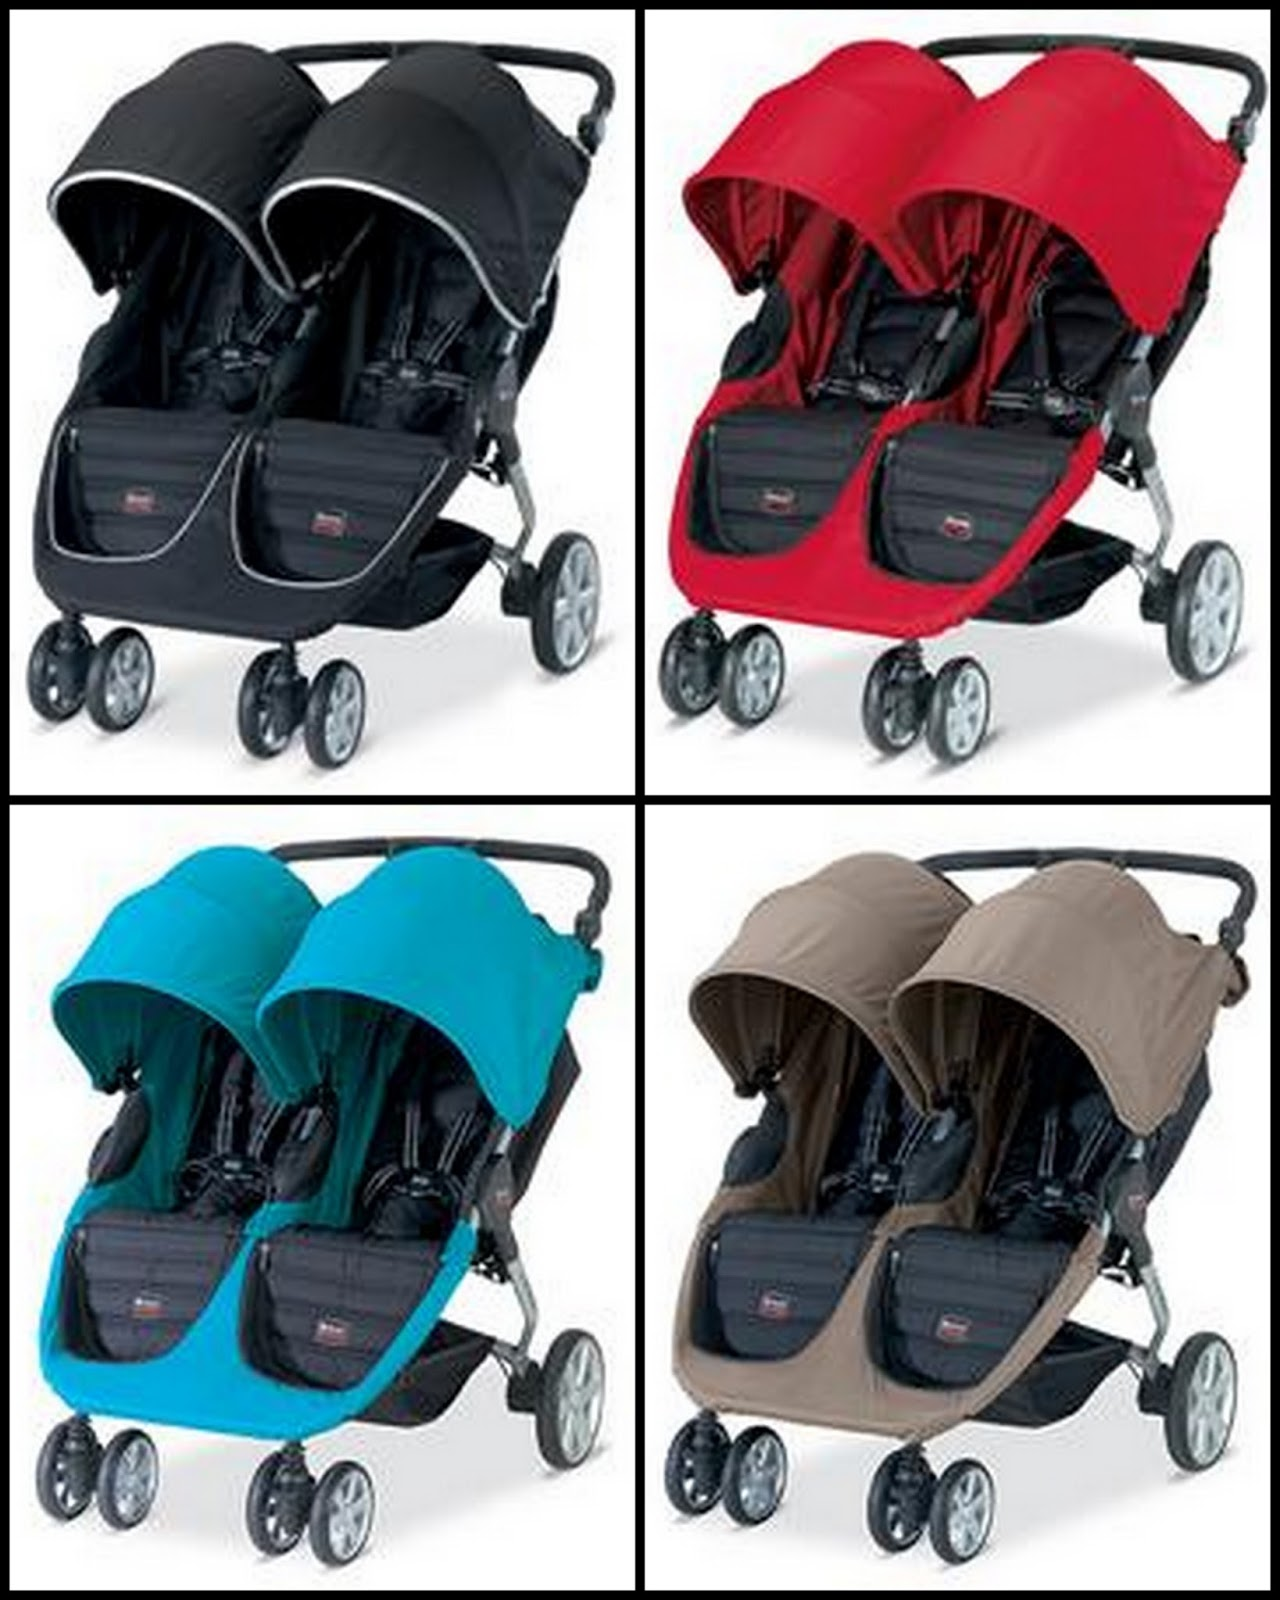 Britax Double Pushchair Reviews Britax B Agile Double Stroller Review Thrifty Nifty Mommy